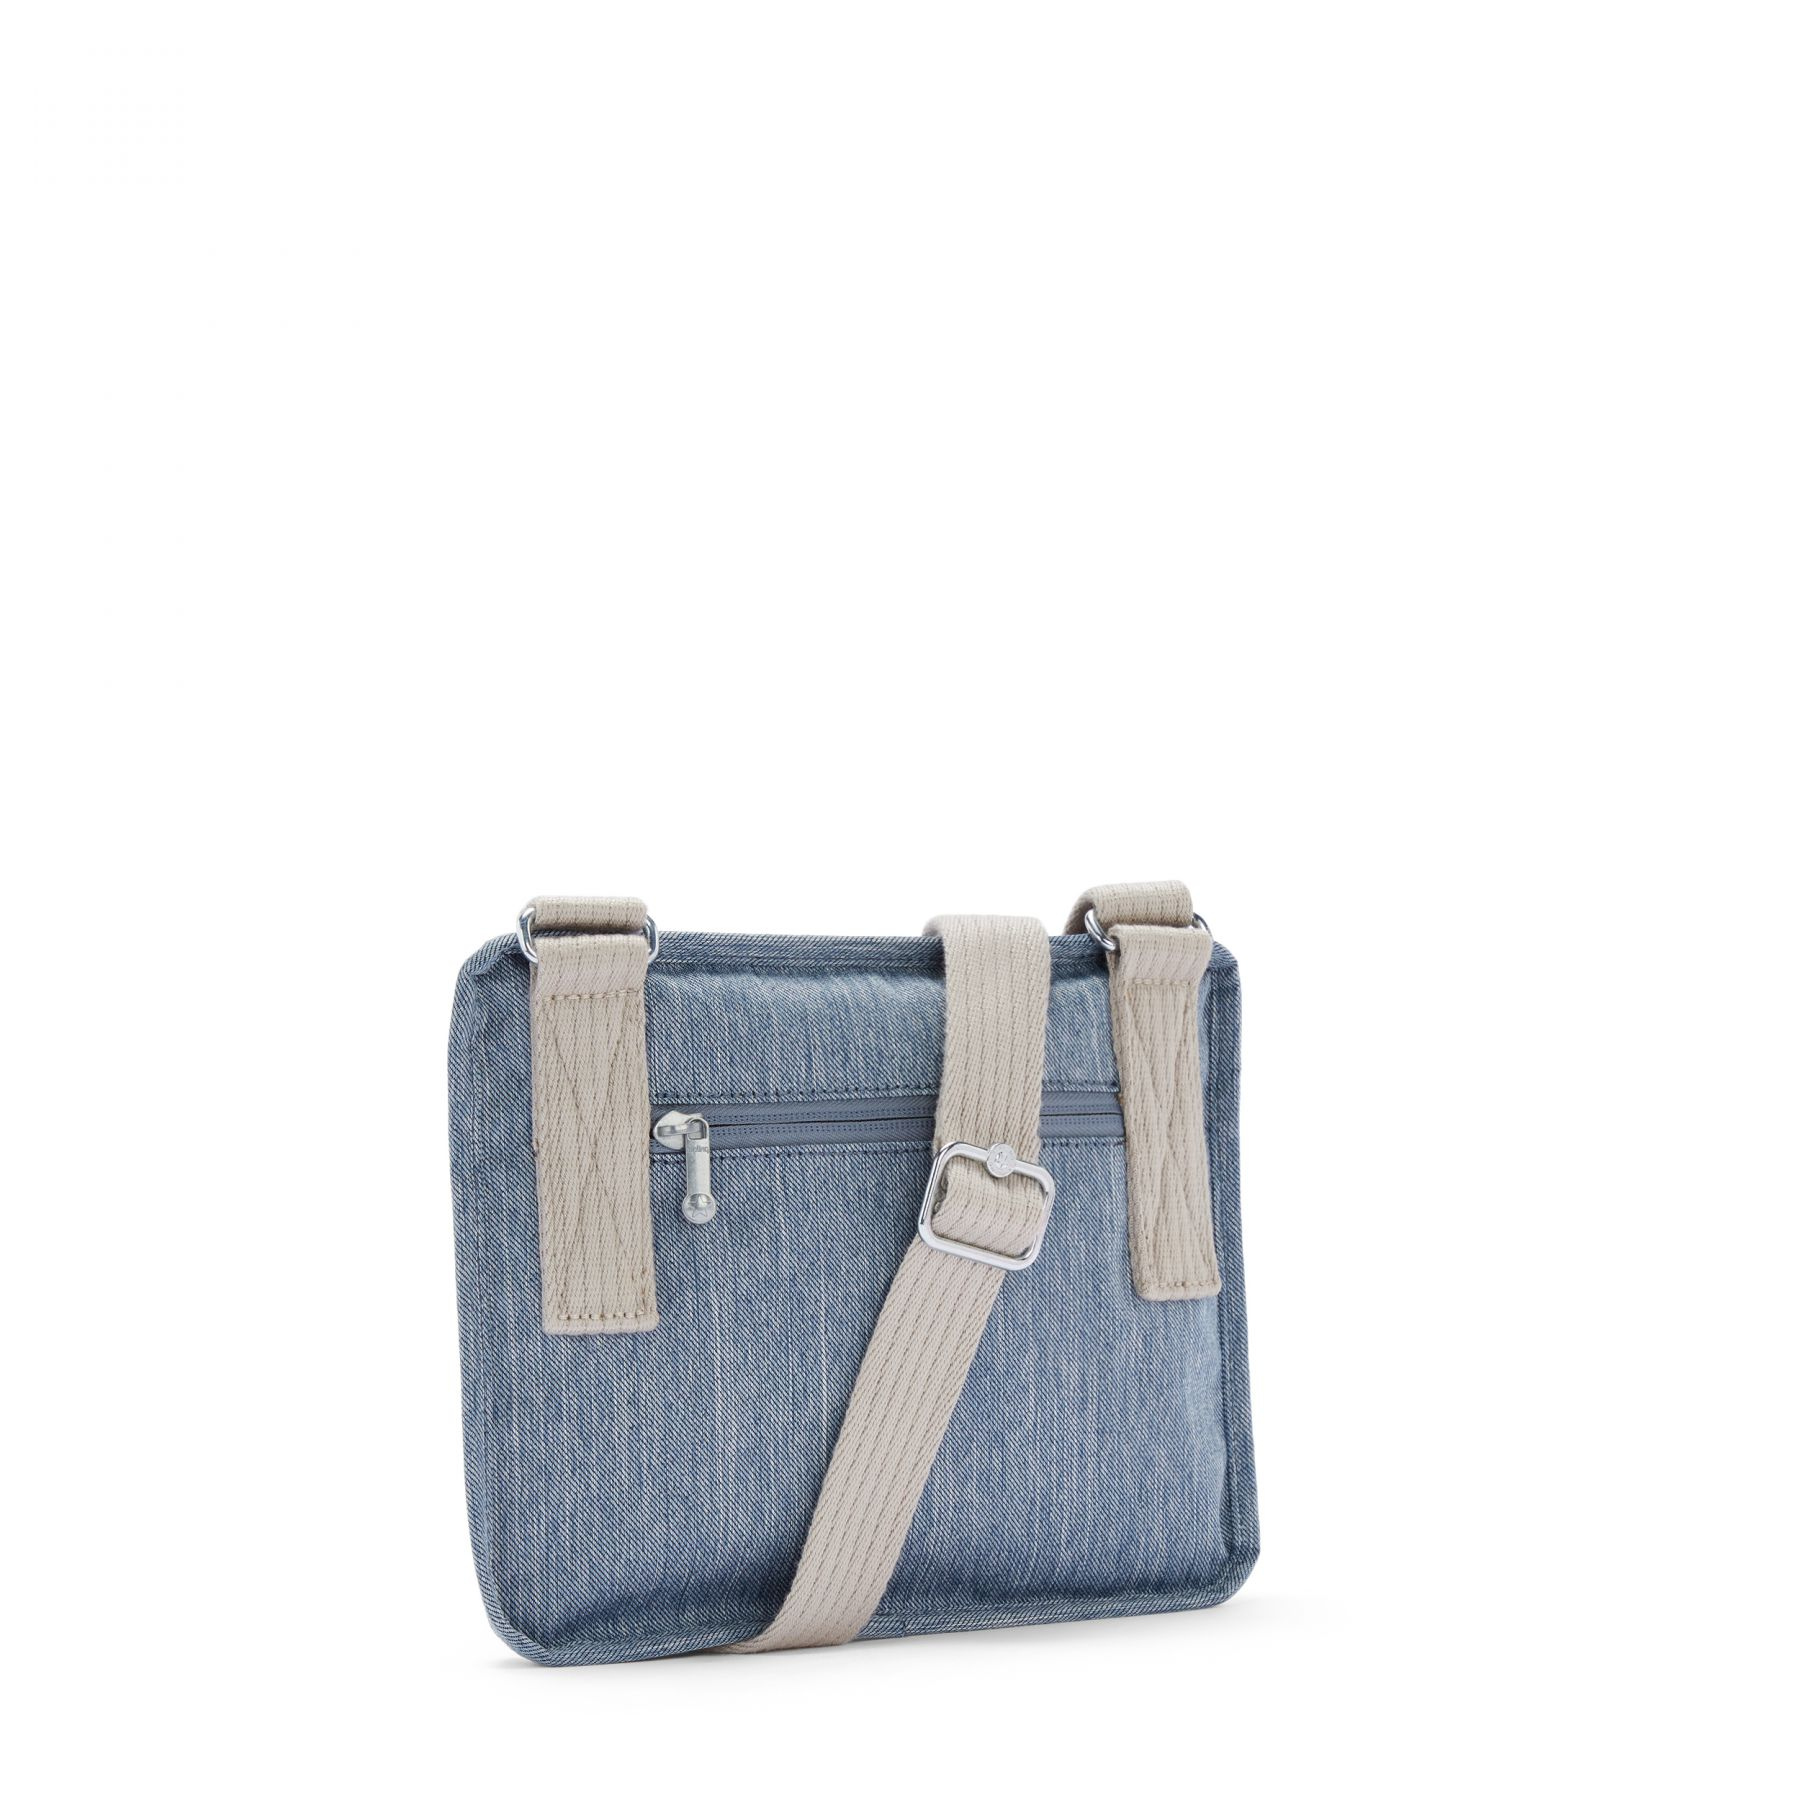 NEAL S OUTLET by Kipling